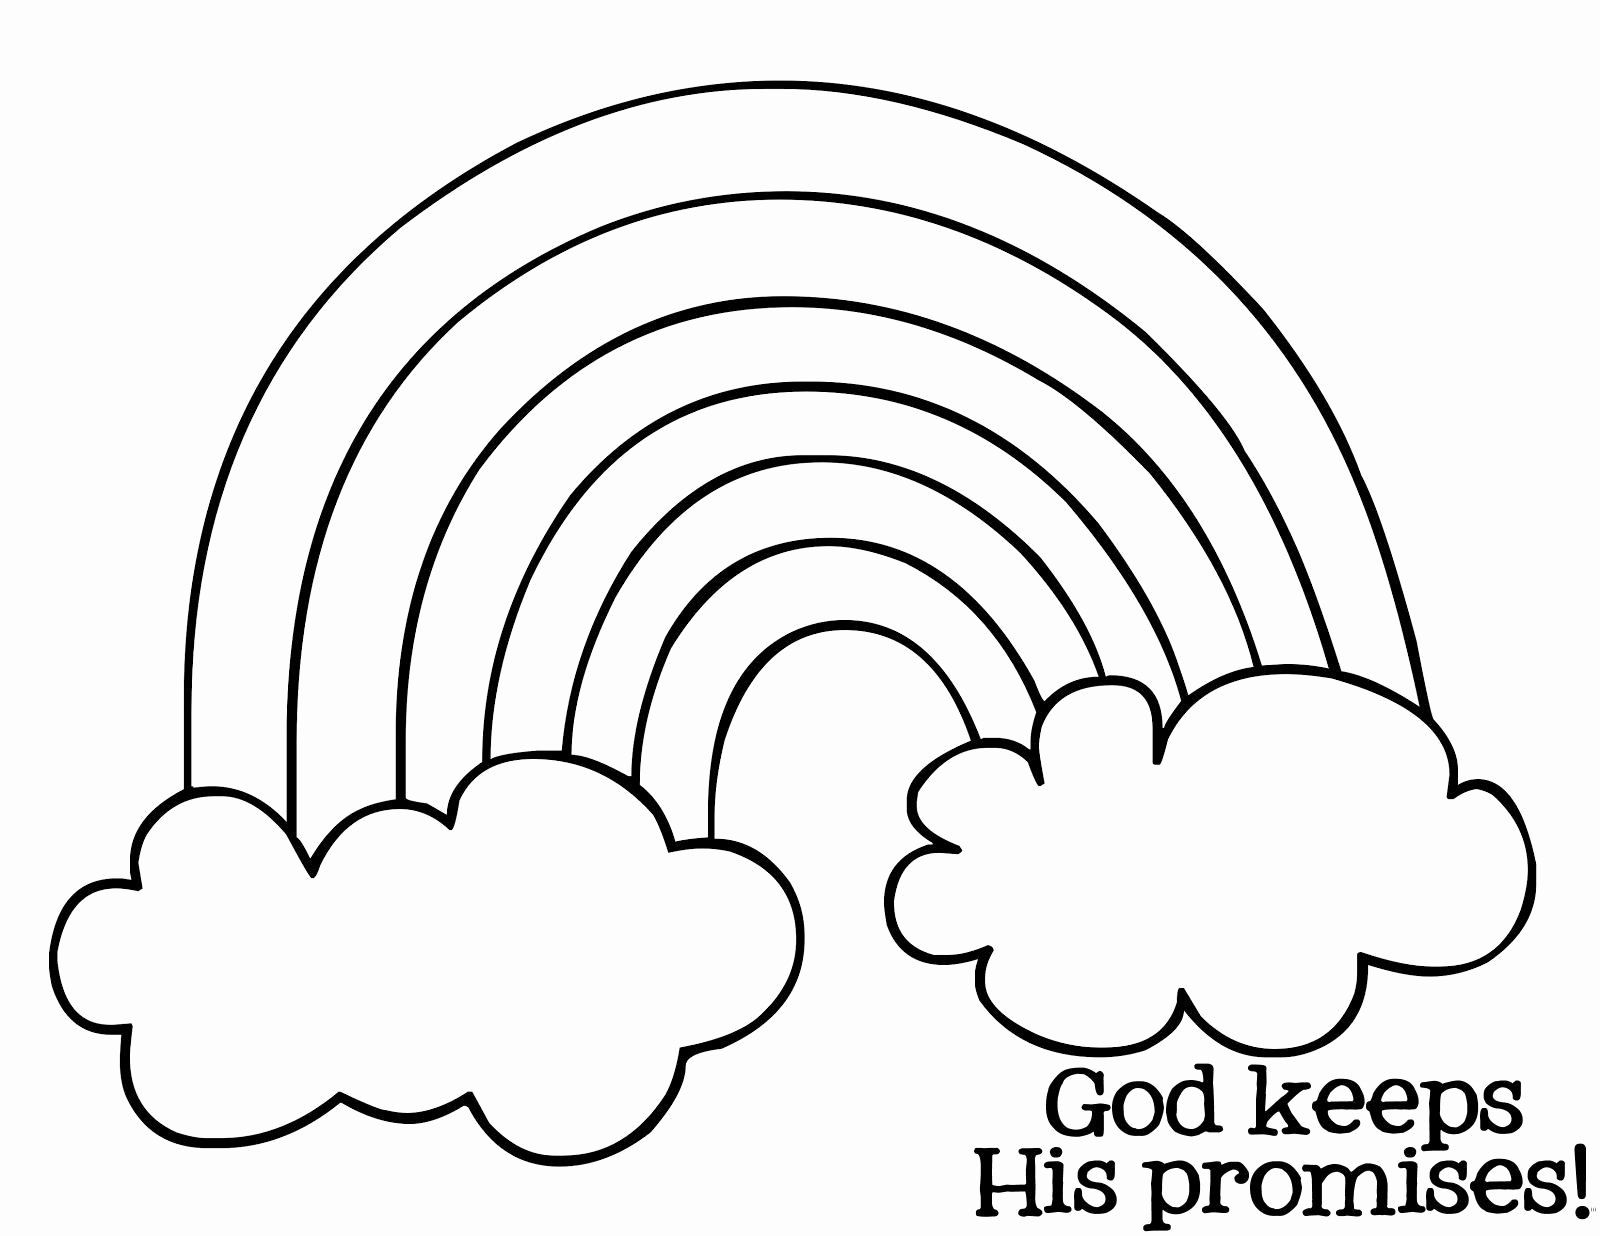 Rainbow Coloring Page Preschool Awesome Pin By Lindsay Cahill On Sunday School Lessons Sunday School Coloring Pages Rainbow Bible Bible Coloring Pages